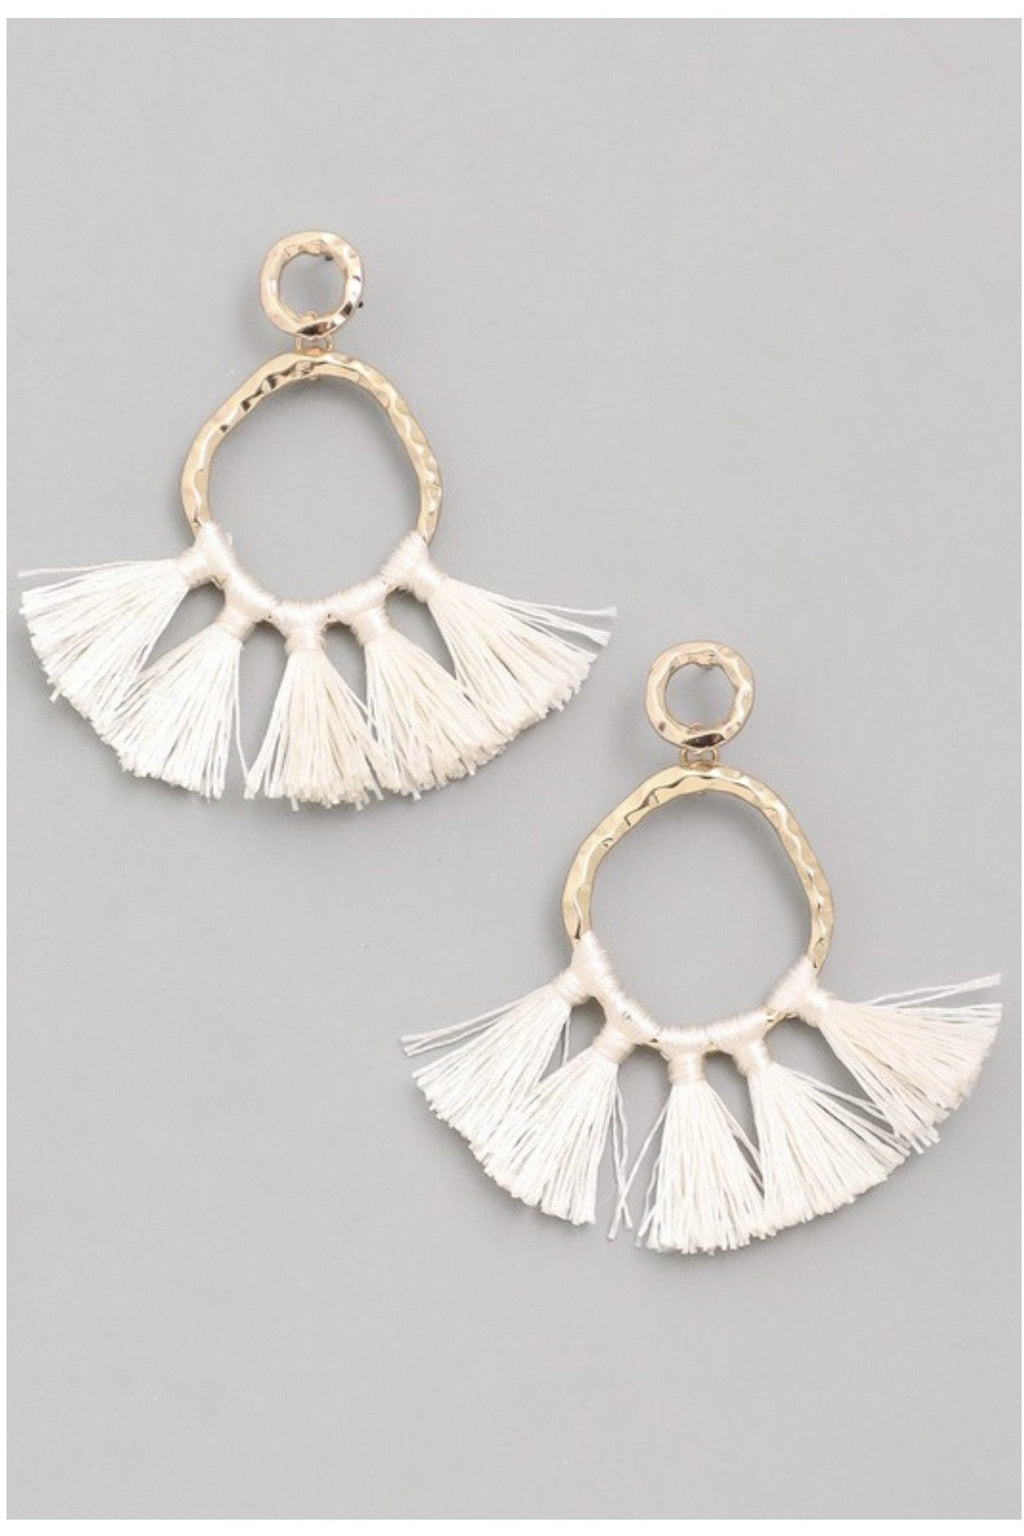 Summer Love Earrings - Indigo Closet